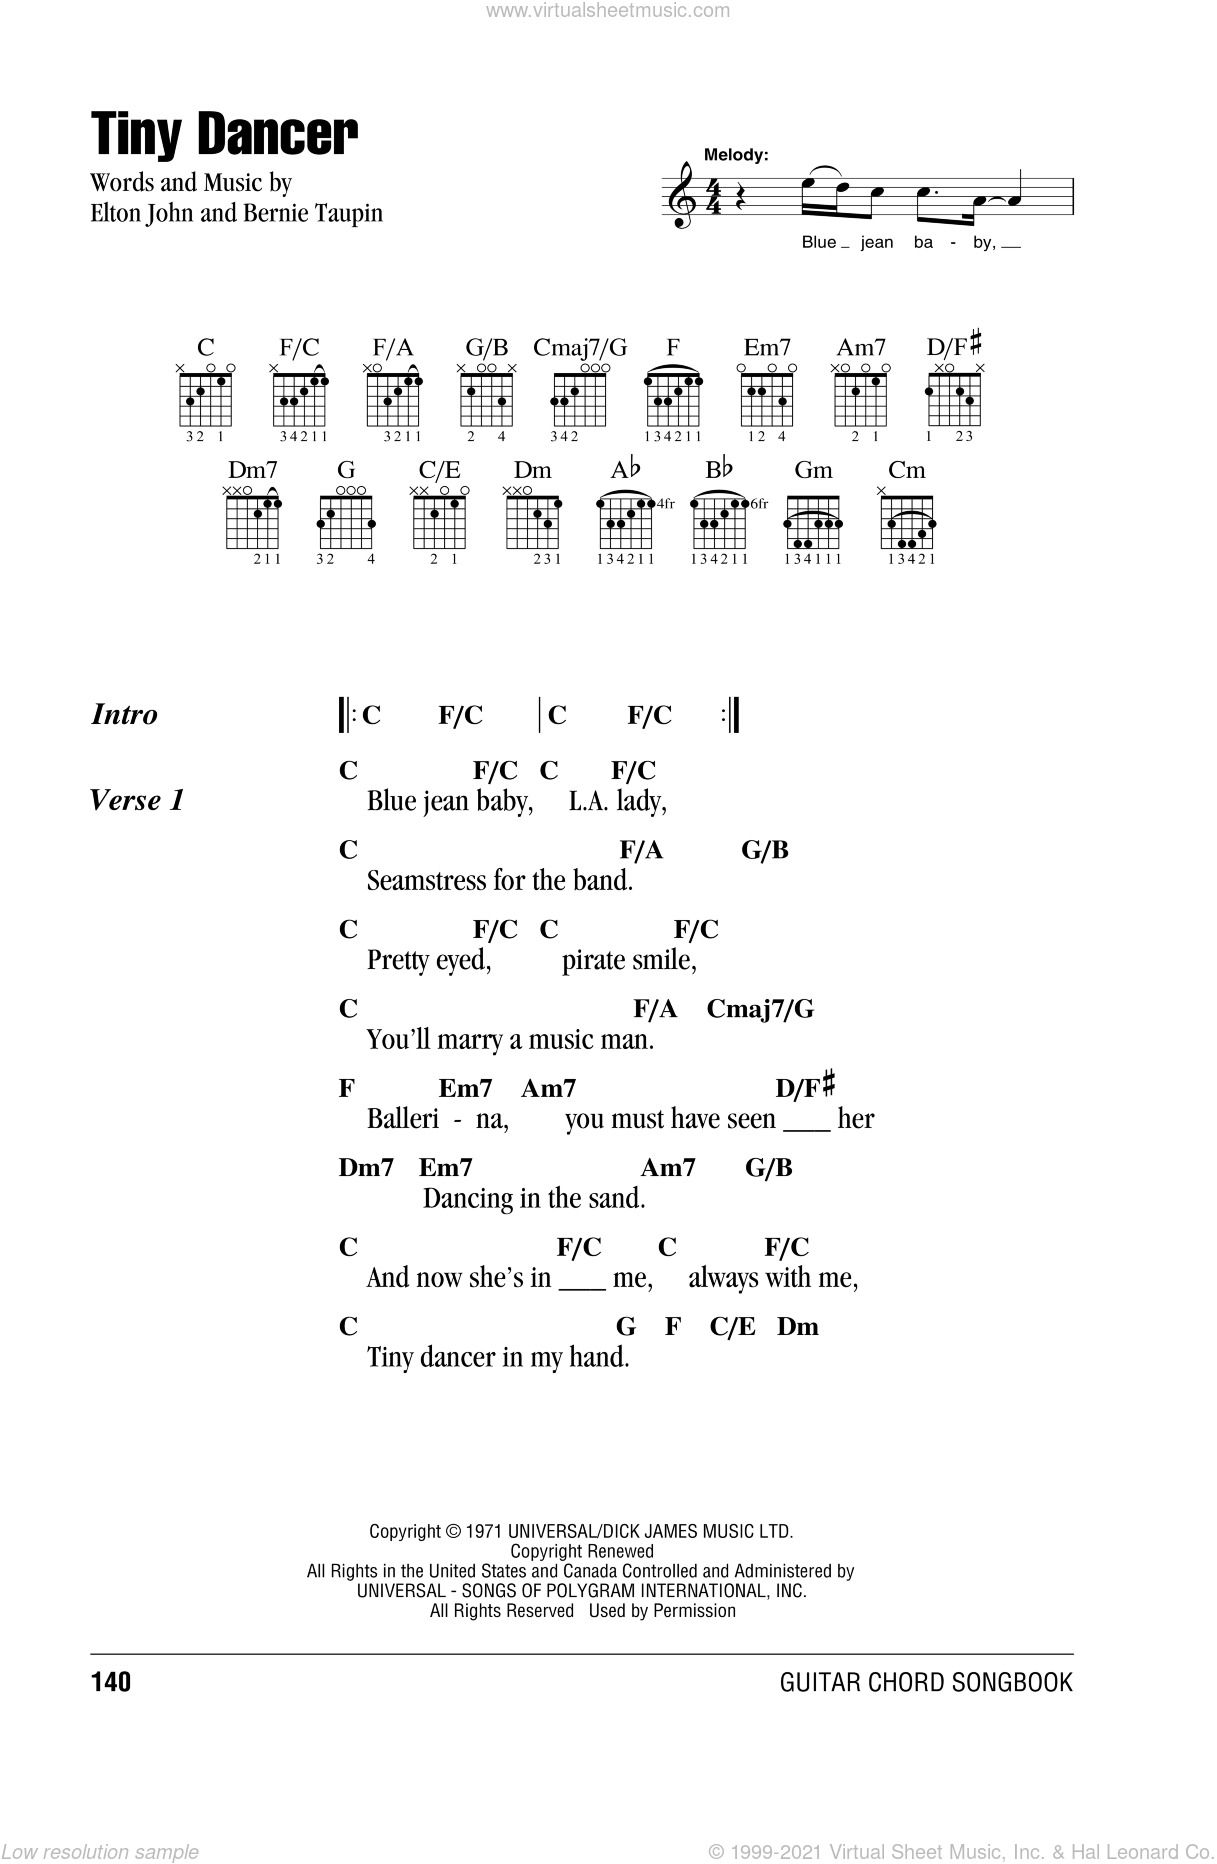 Tiny Dancer sheet music for guitar (chords) by Elton John and Bernie Taupin, intermediate skill level